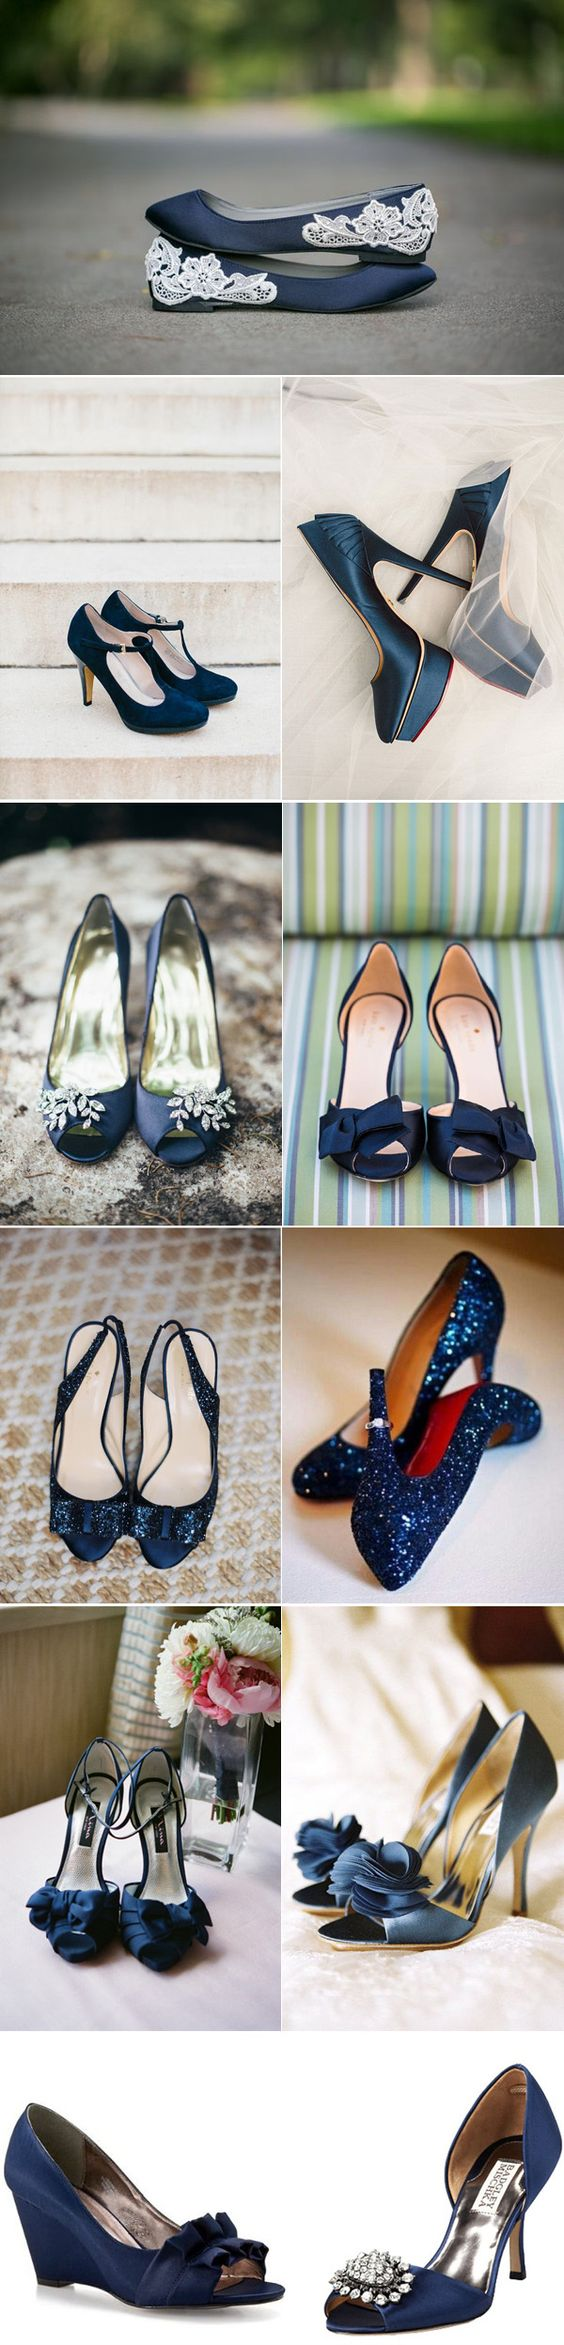 45  Chic Blue Wedding Shoes for Bridal   http://www.deerpearlflowers.com/60-chic-blue-wedding-shoes-for-bridal/